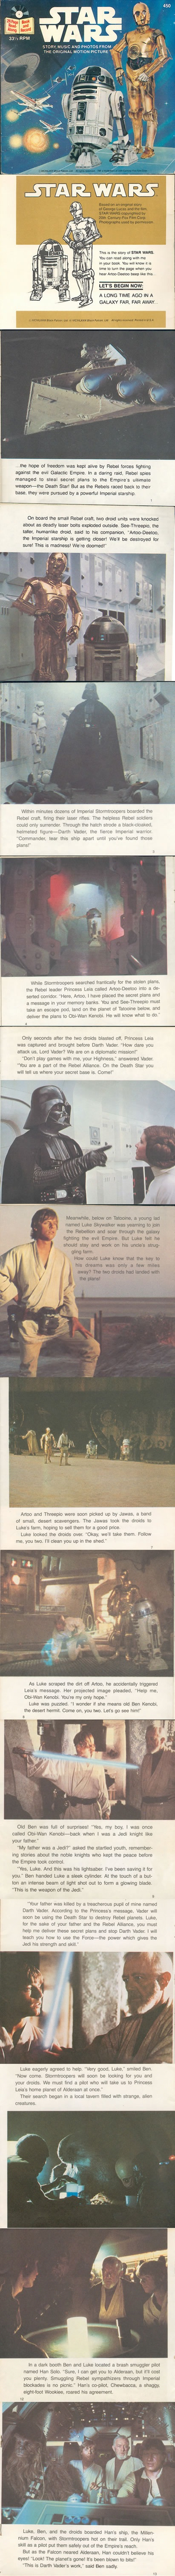 star_wars_story_book_part_1